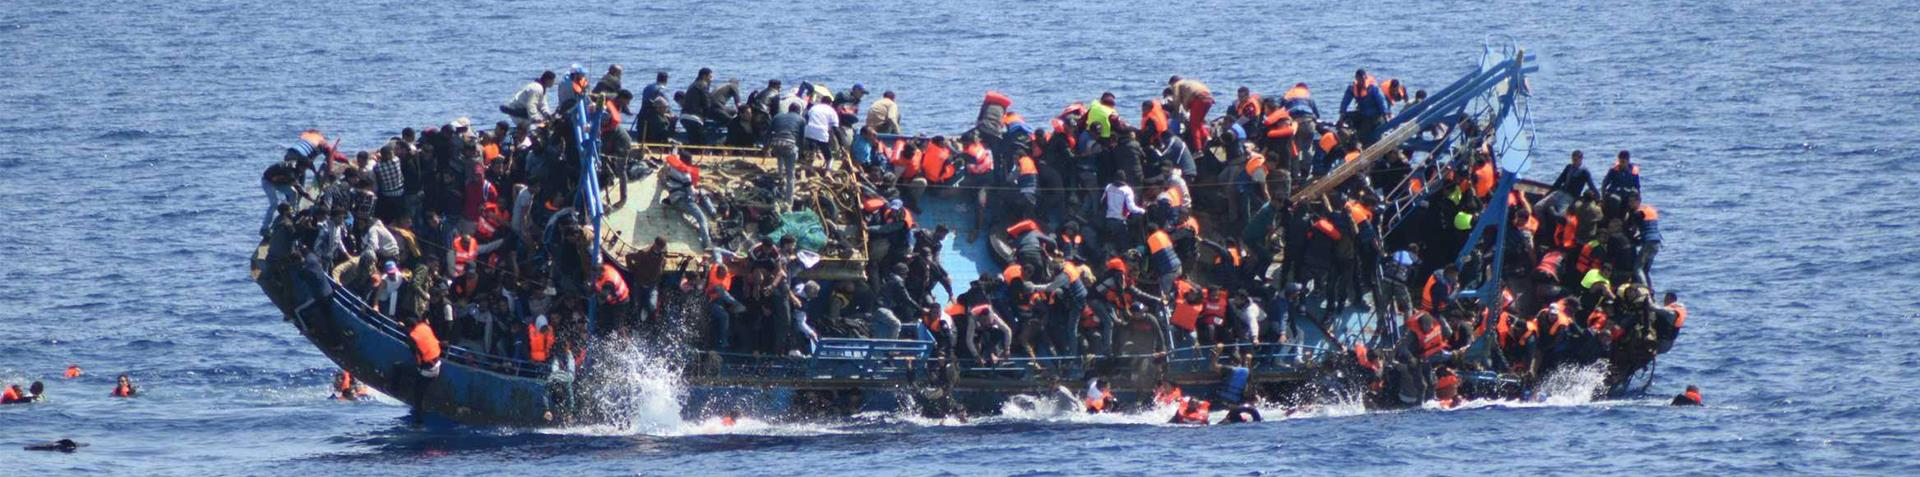 Ducor Sports Live Blog: Death in the Mediterranean – the Dangerous Journey from Africa to Europe